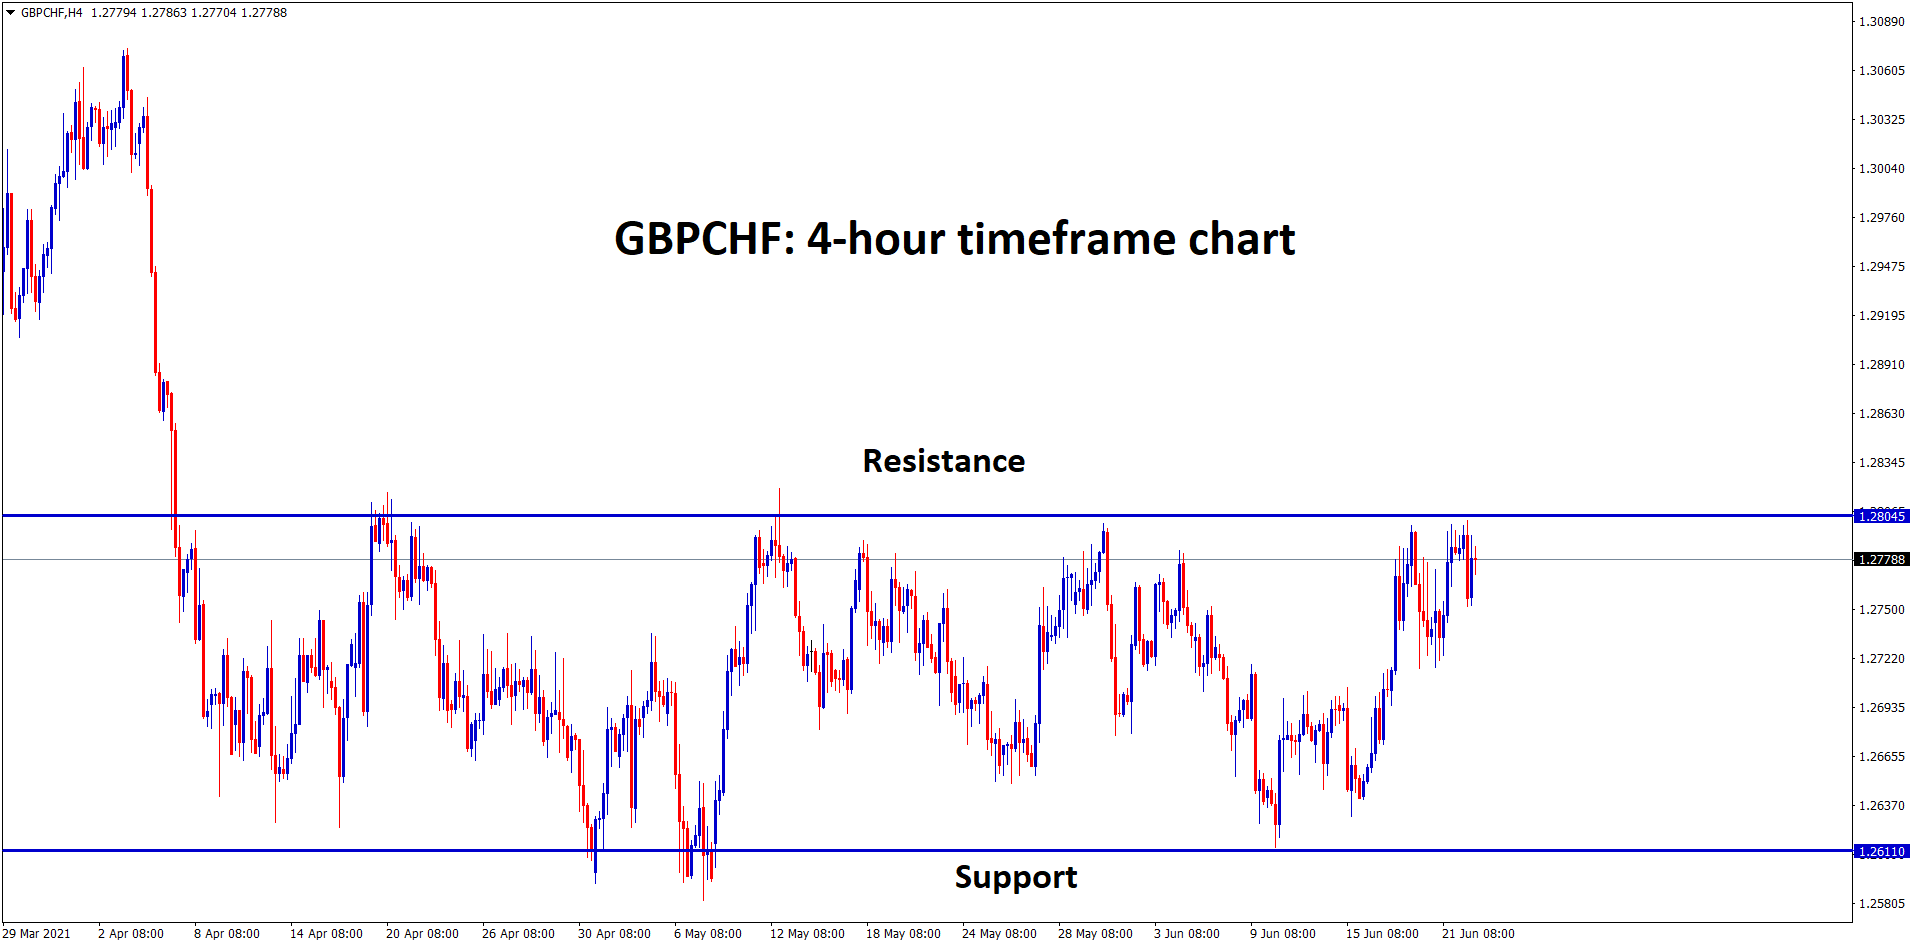 GBPCHF at the resistance level now currently in the ranging market